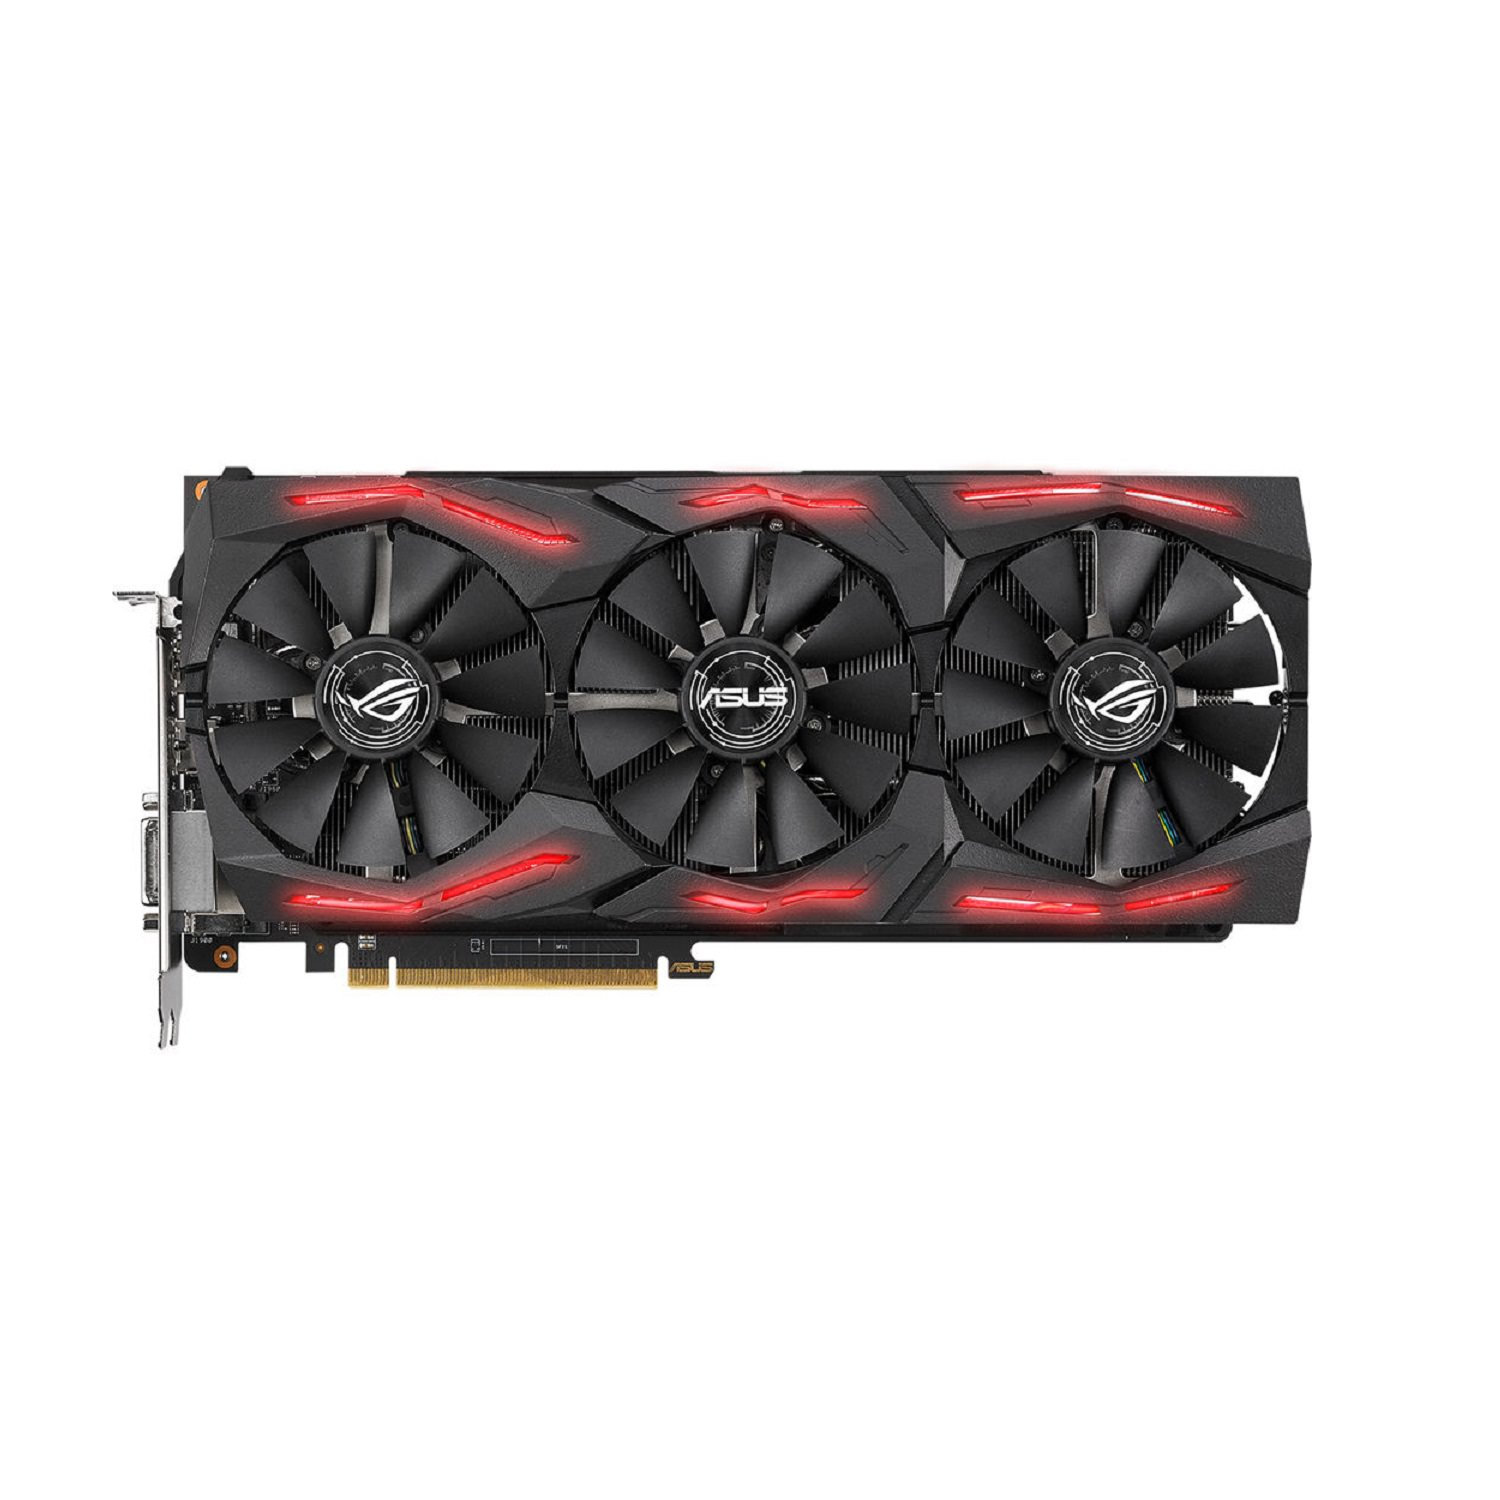 Asus Rog-Strix-Rxvega64-O8G-Gaming Graphics Card - ROG-STRIX-RXVEGA64-O8G-GAMING